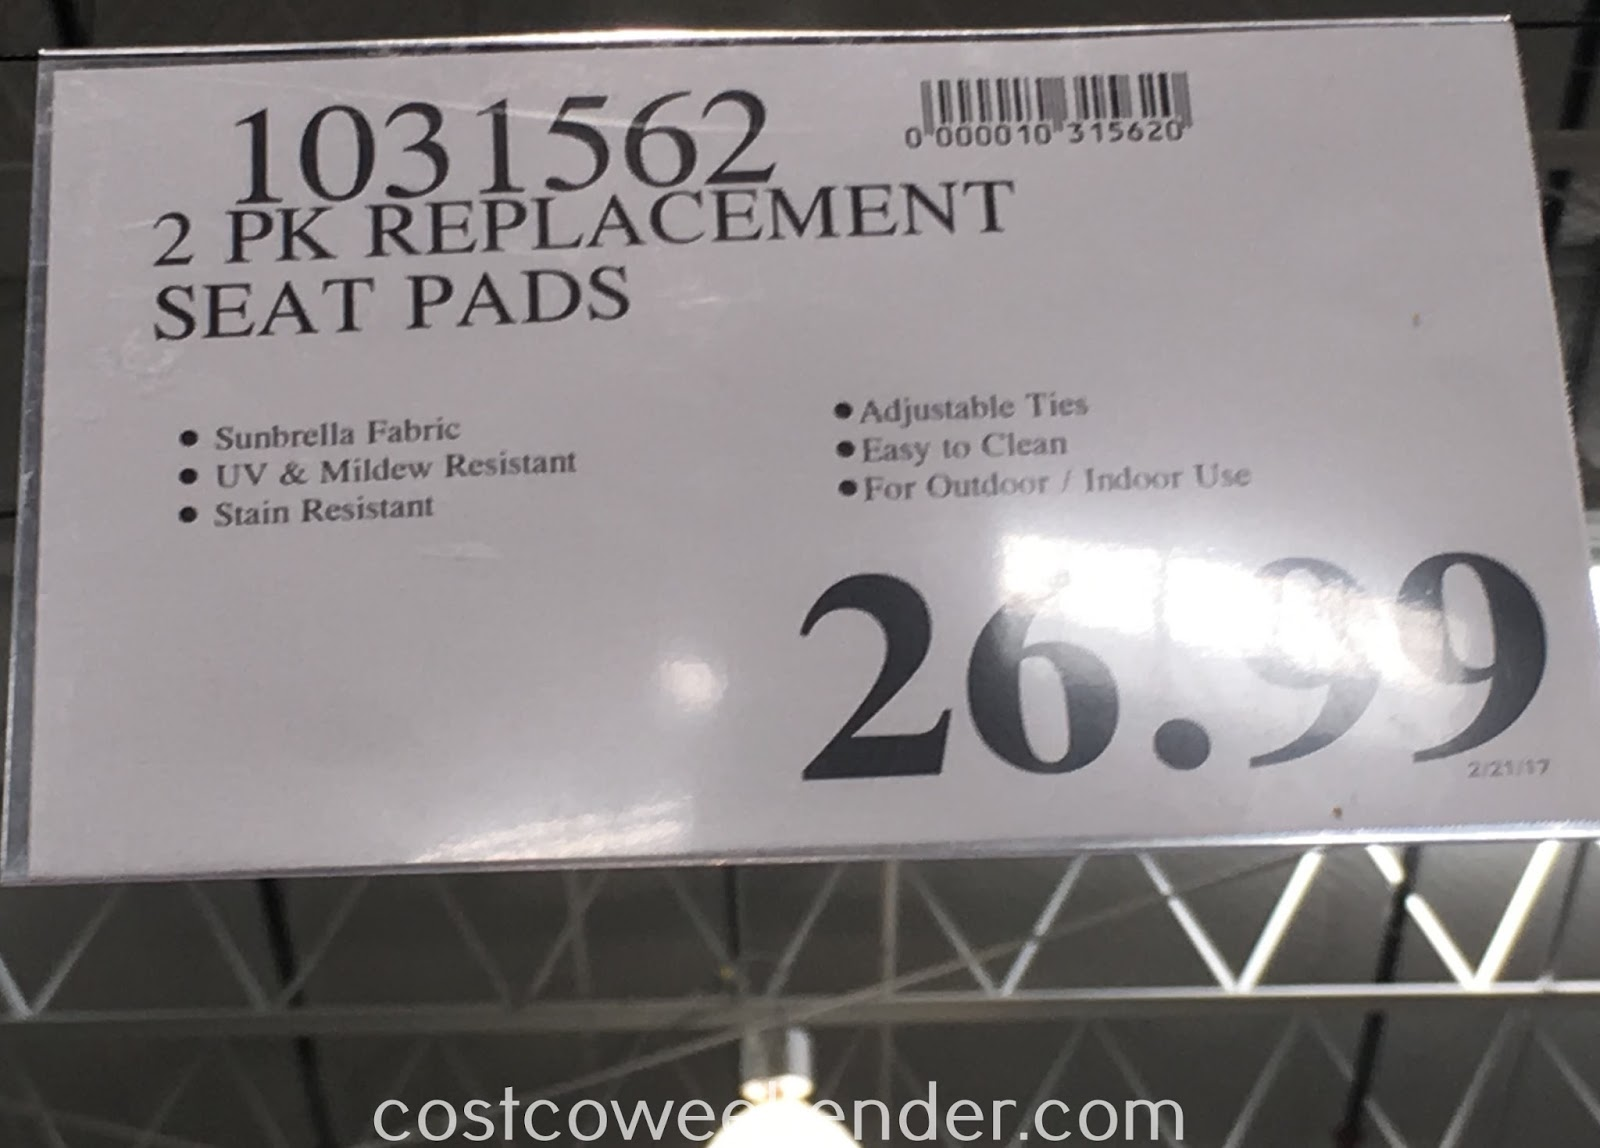 Costco 1031562 - Deal for a 2 pack of Sunbrella Outdoor Seat Pads at Costco